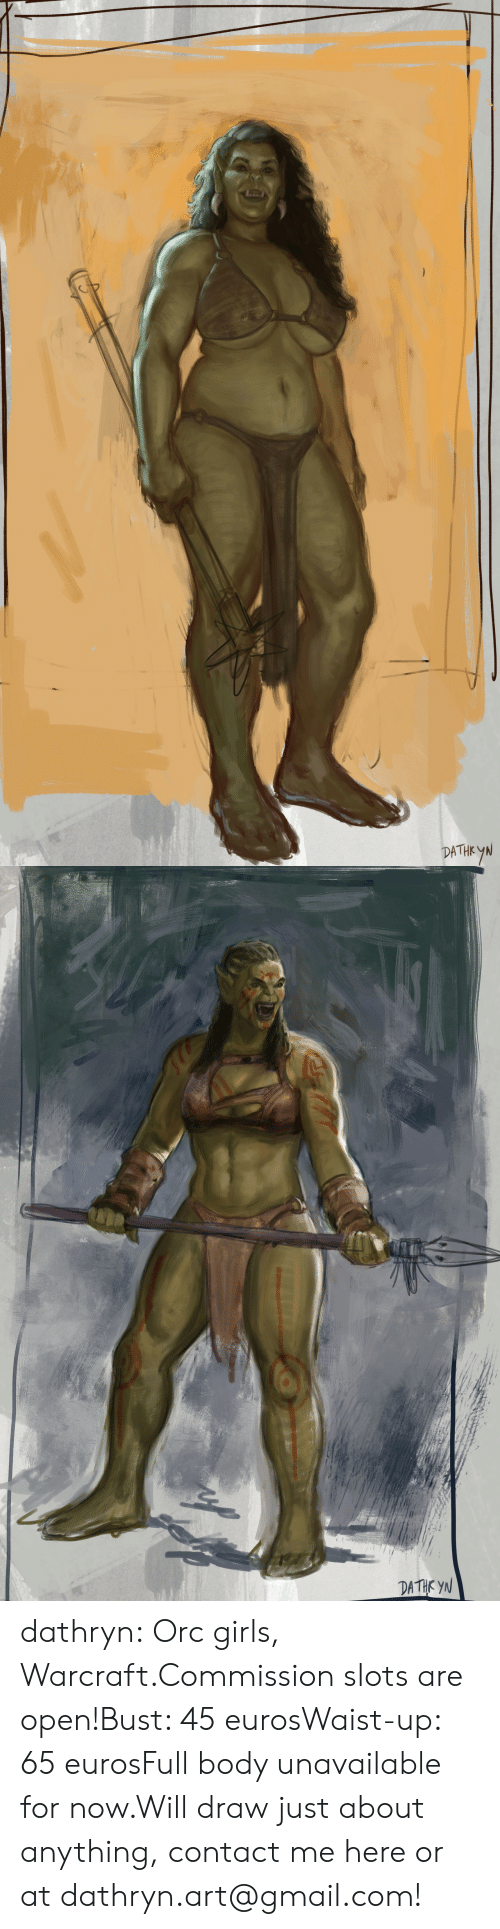 Girls, Tumblr, and Blog: DATHEYN   DATHK YN dathryn:  Orc girls, Warcraft.Commission slots are open!Bust: 45 eurosWaist-up: 65 eurosFull body unavailable for now.Will draw just about anything, contact me here or at dathryn.art@gmail.com!